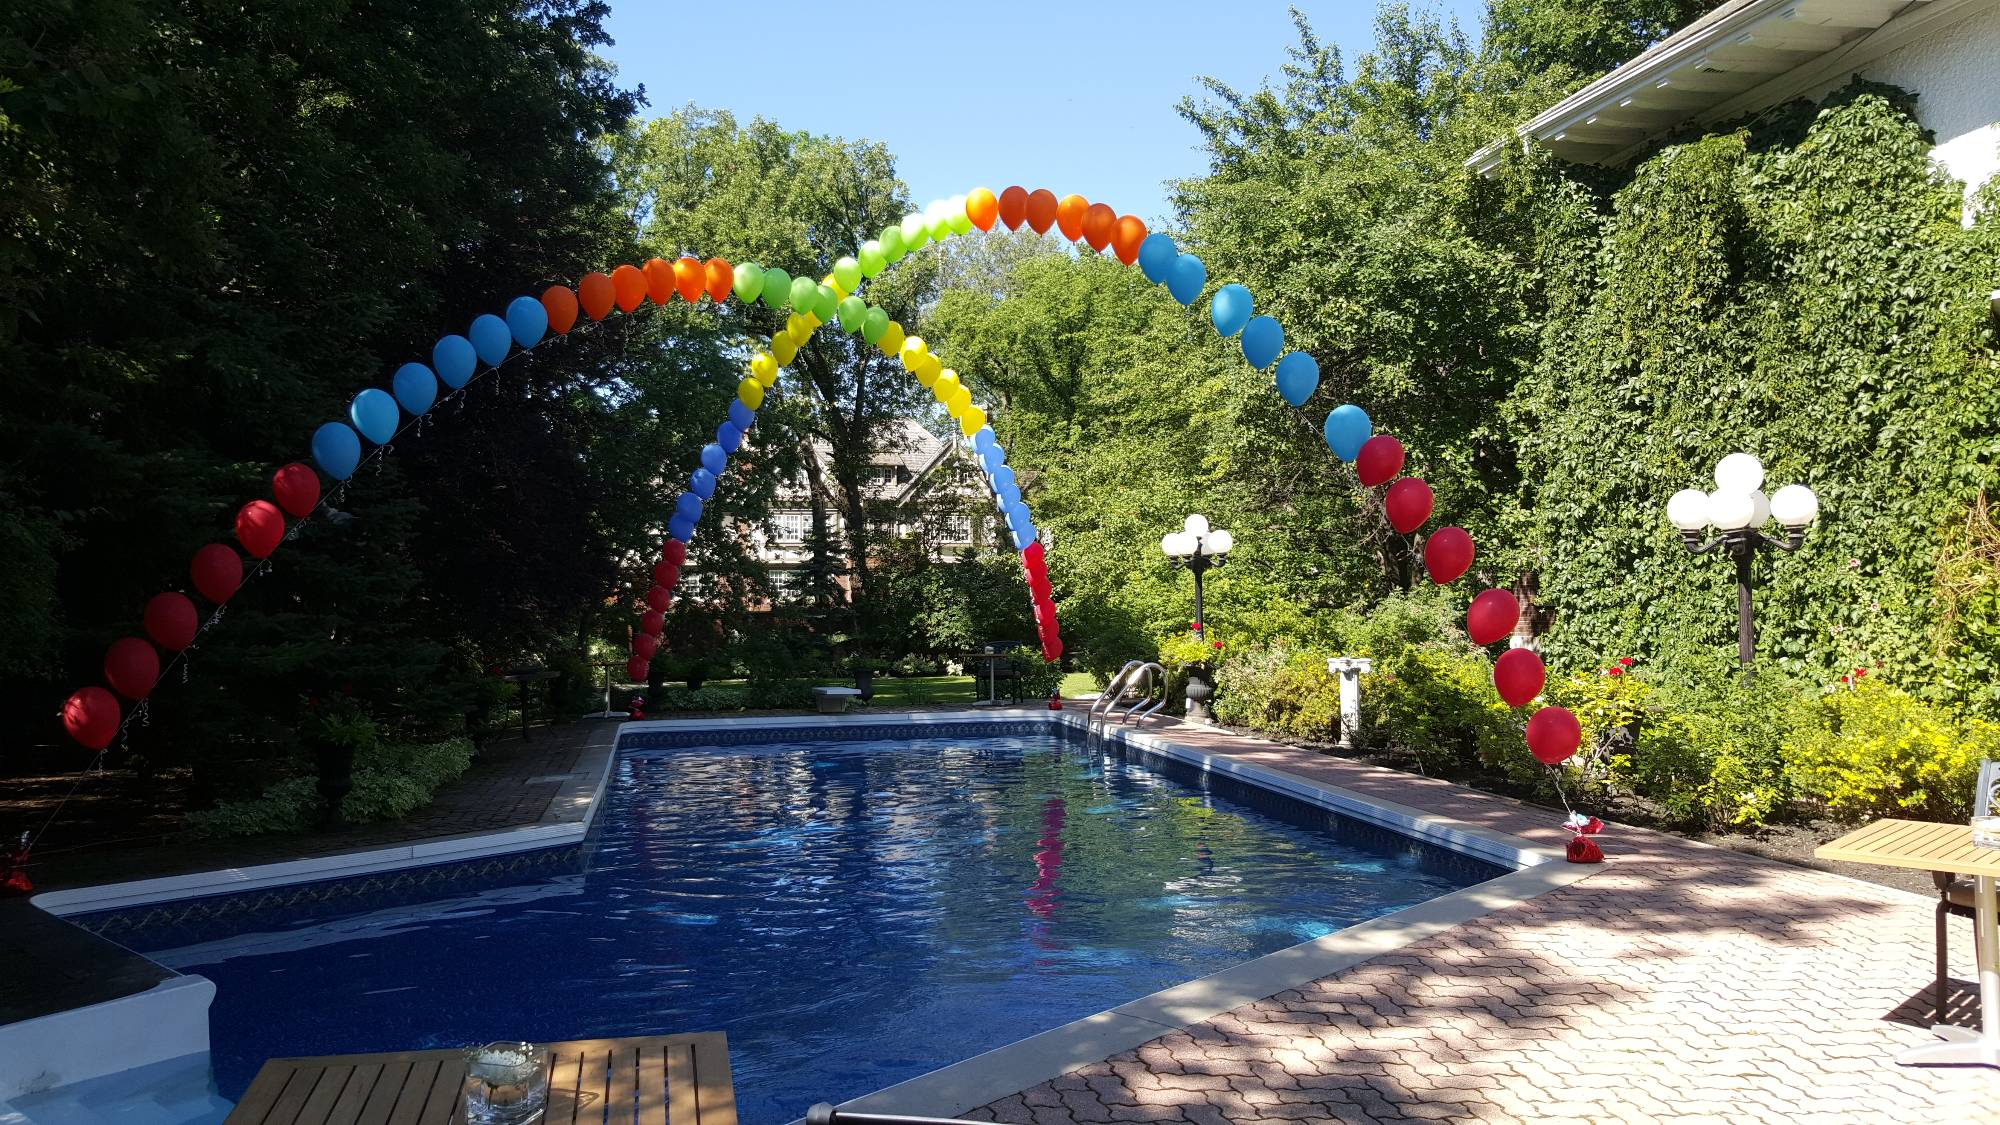 Outdoor Chris Cross Archway by Balloon Empire